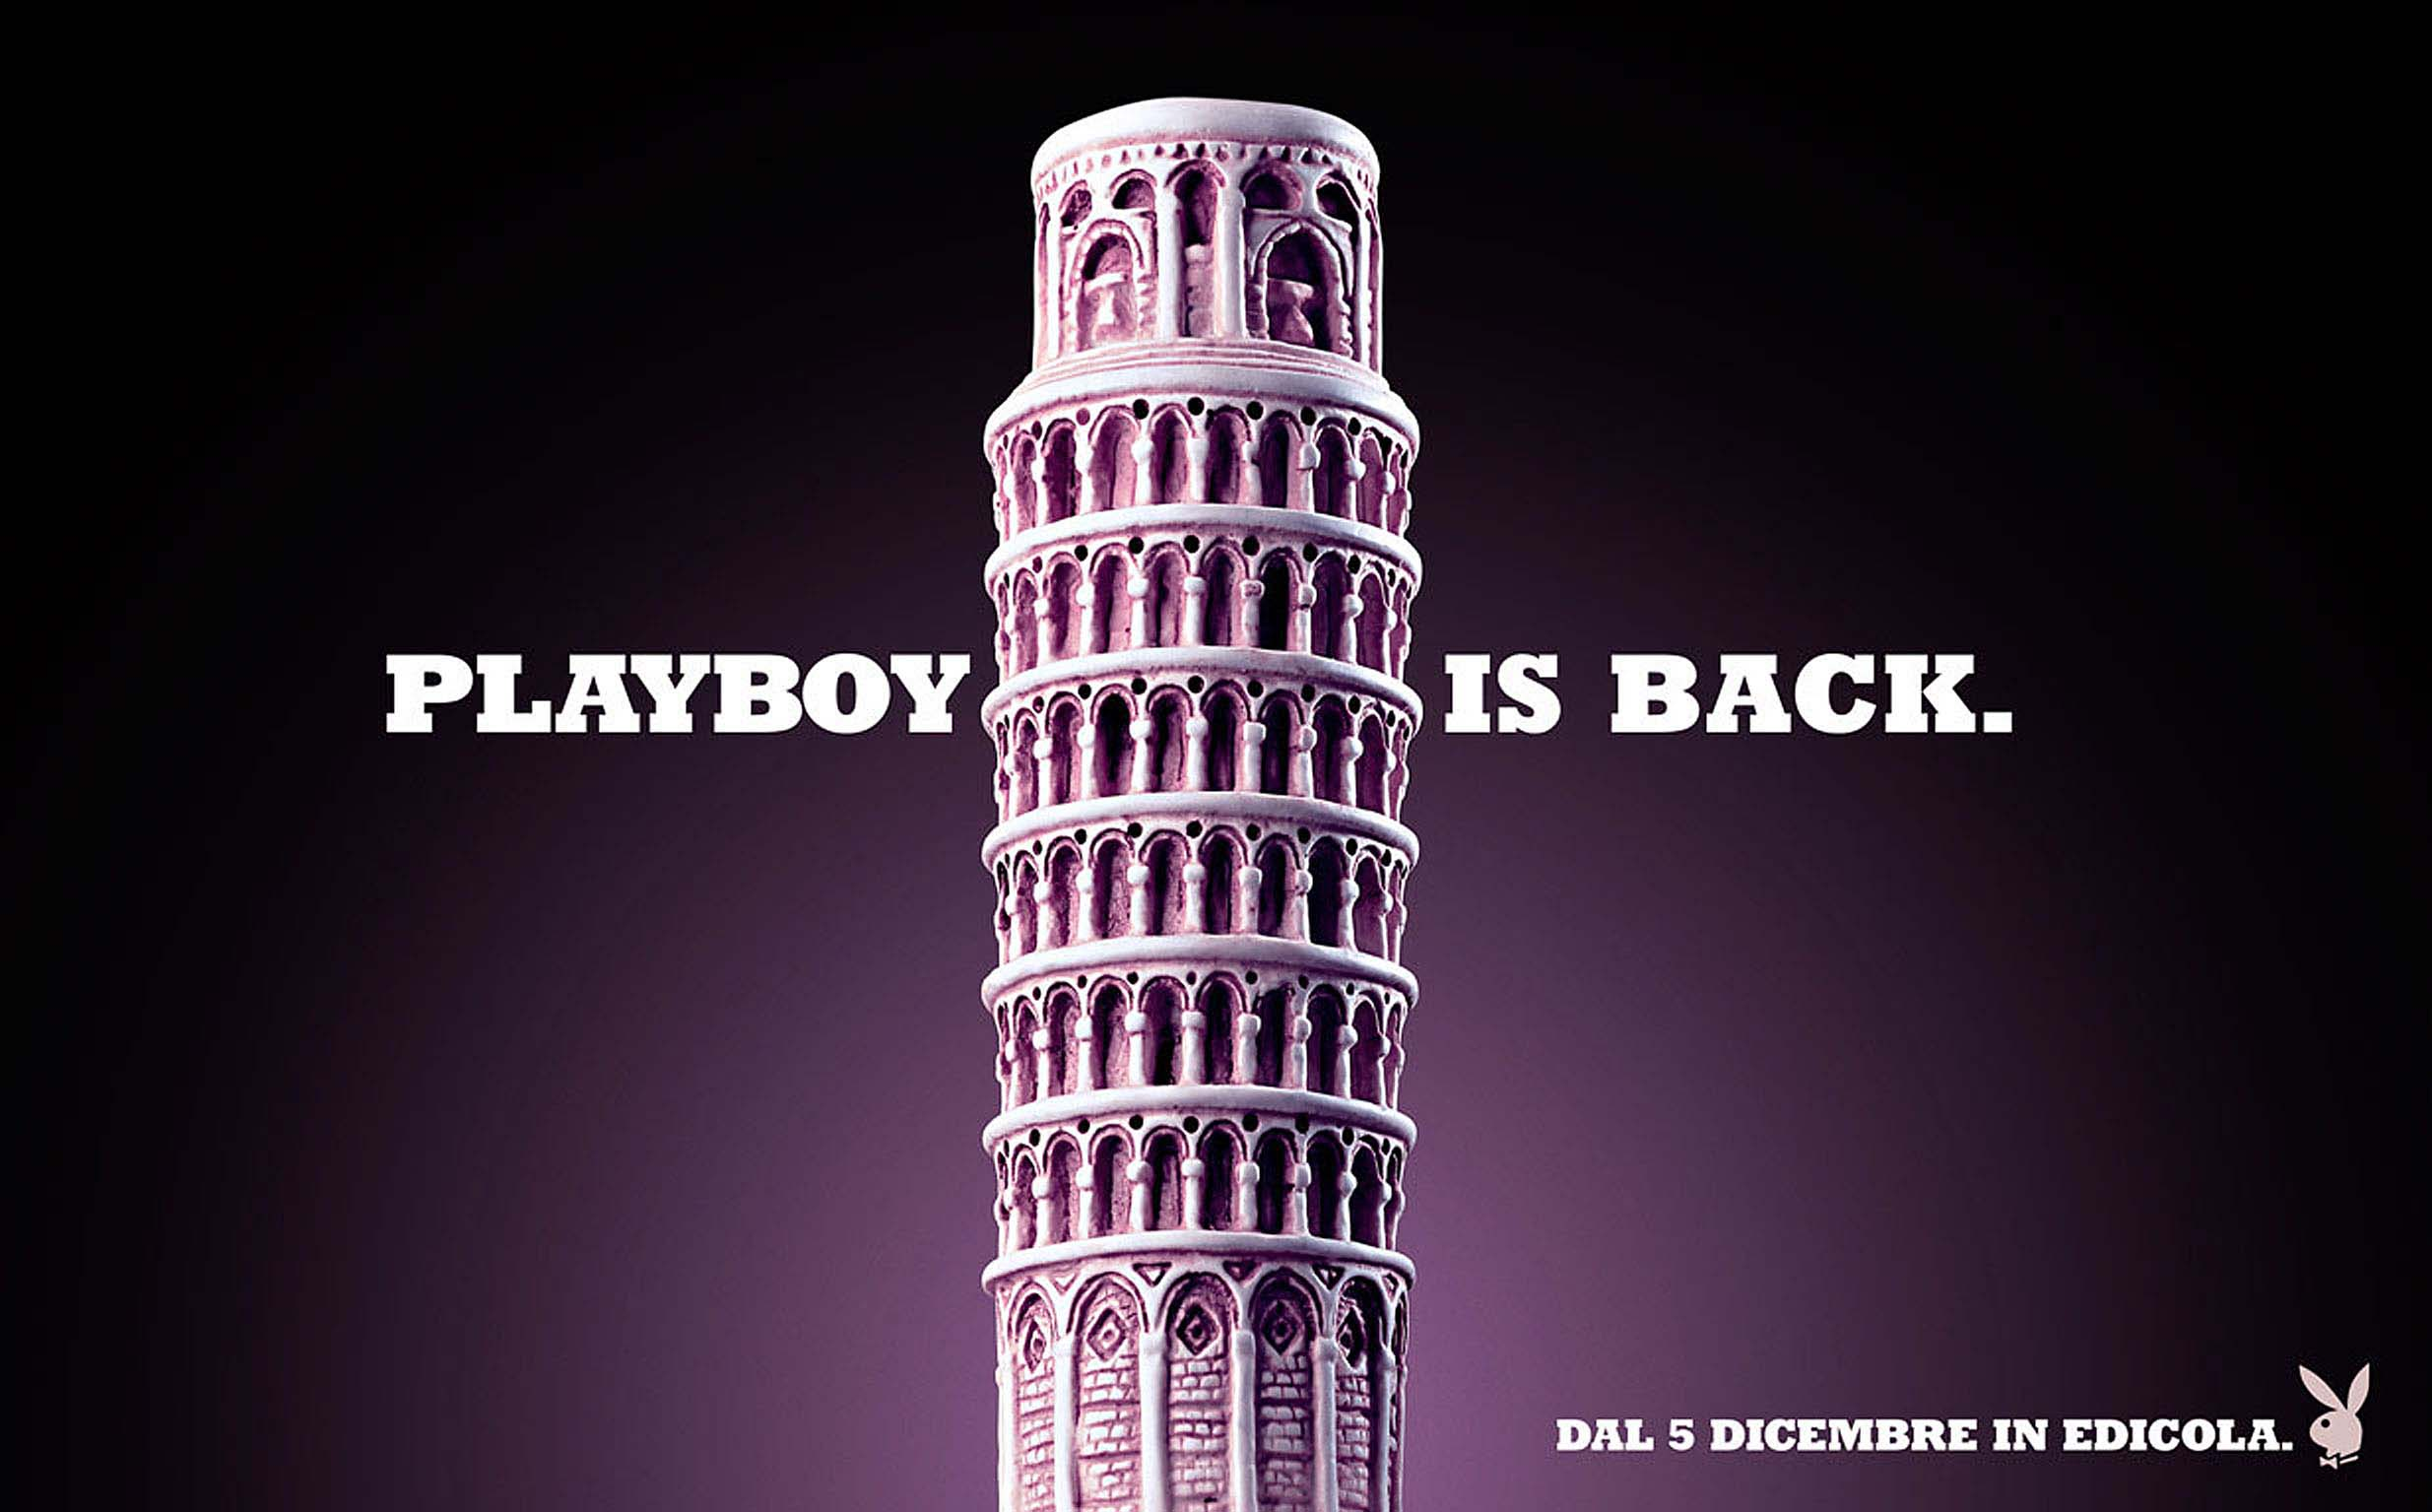 Playboy is back.